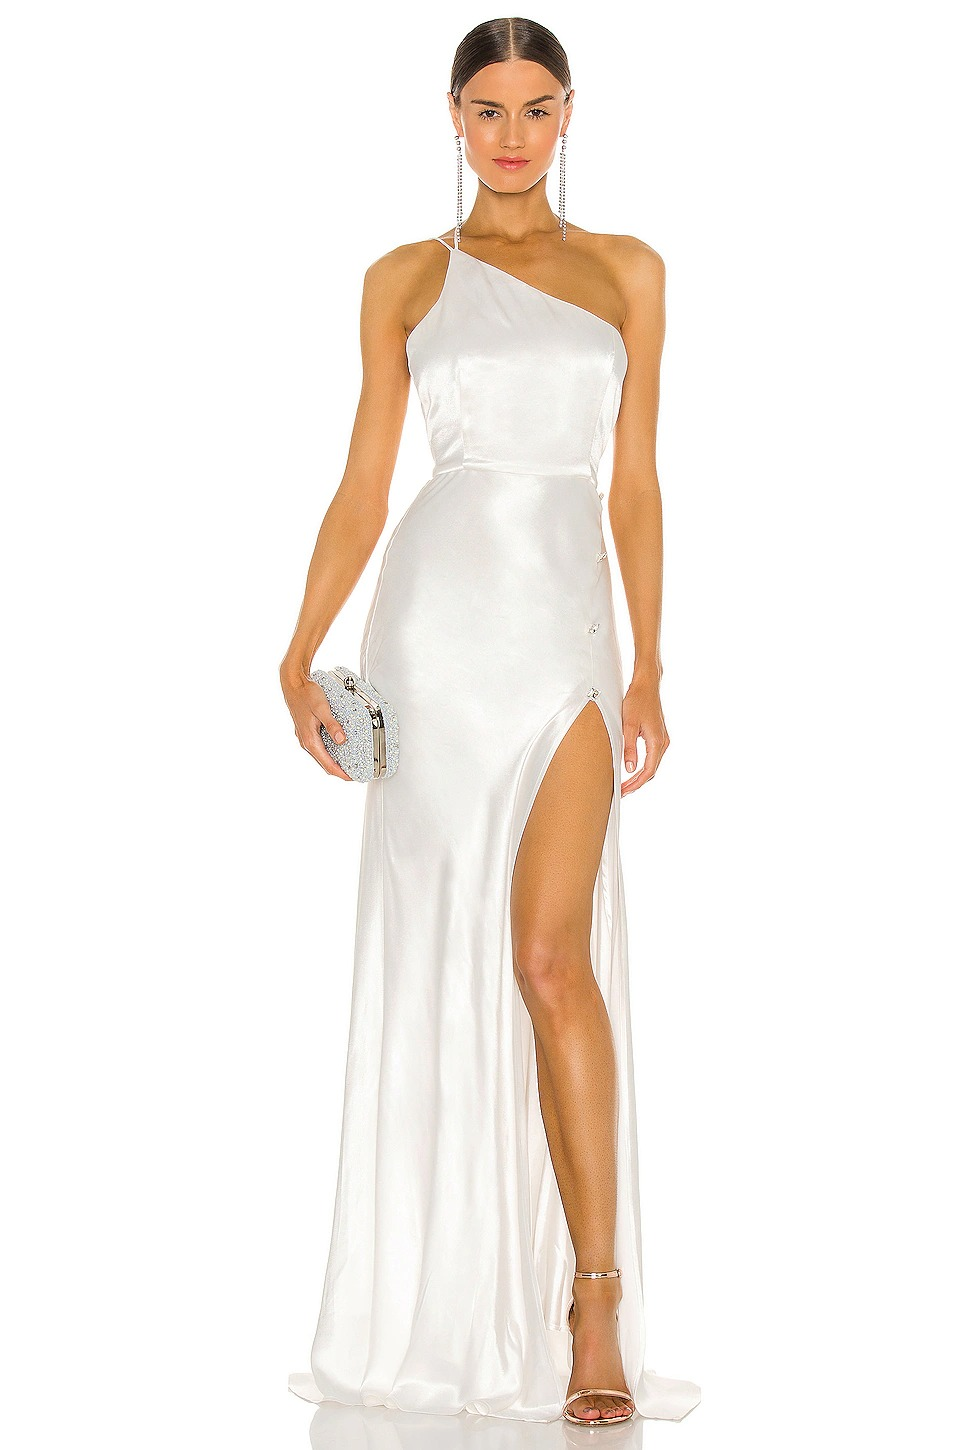 Affordable satin wedding dress with thigh slit